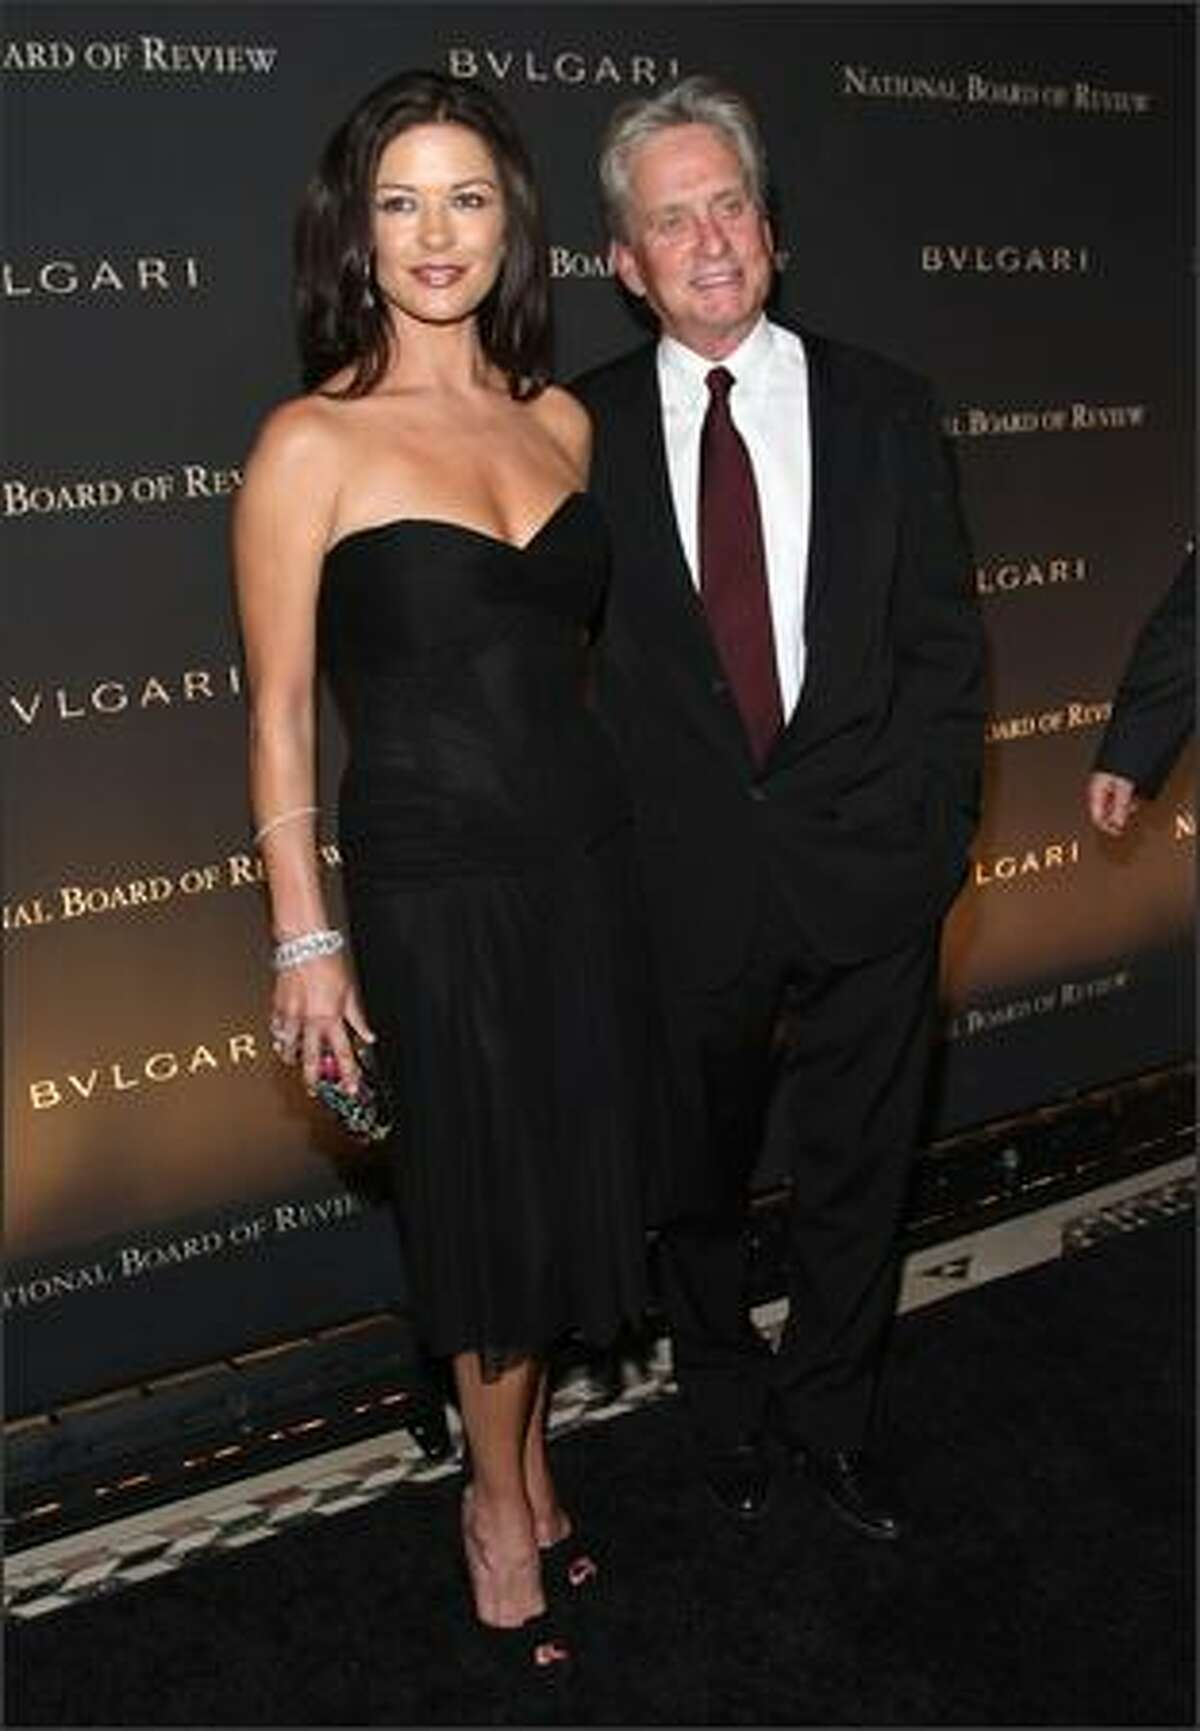 Husband-and-wife actors Catherine Zeta Jones and Michael Douglas attend the 2007 National Board of Review Awards Gala at Cipriani 42nd Stree in New York.